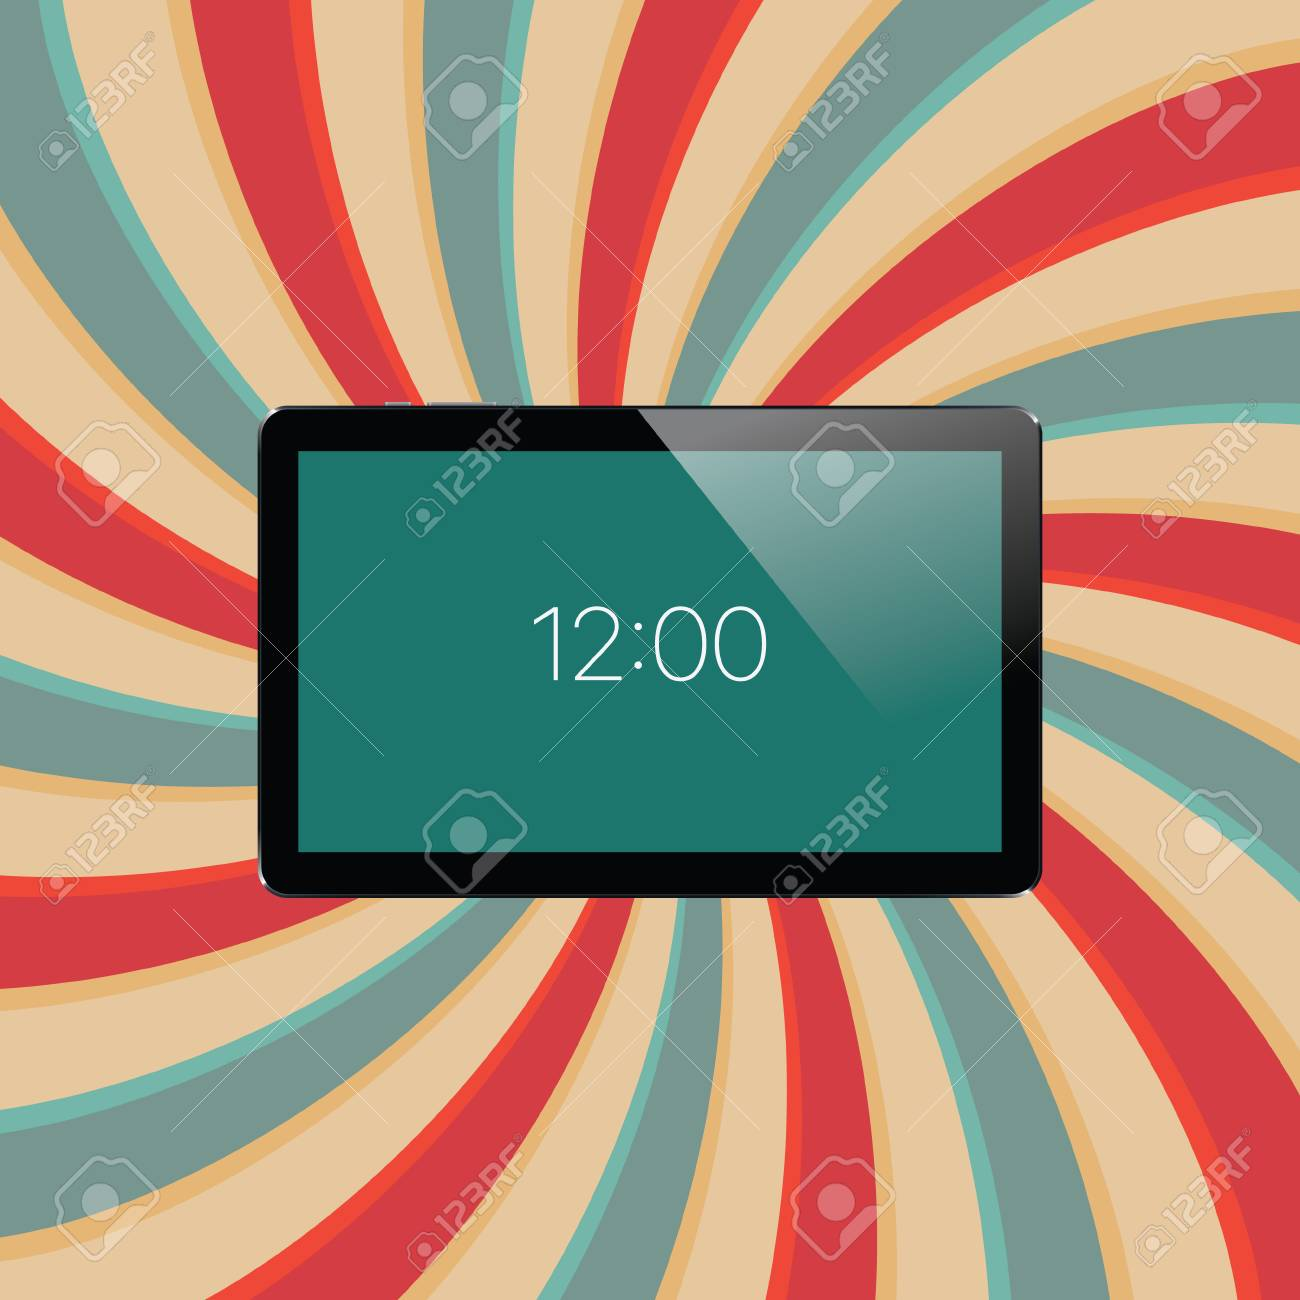 Digital tablet with shiny sensor screen on abstract swirl colorful